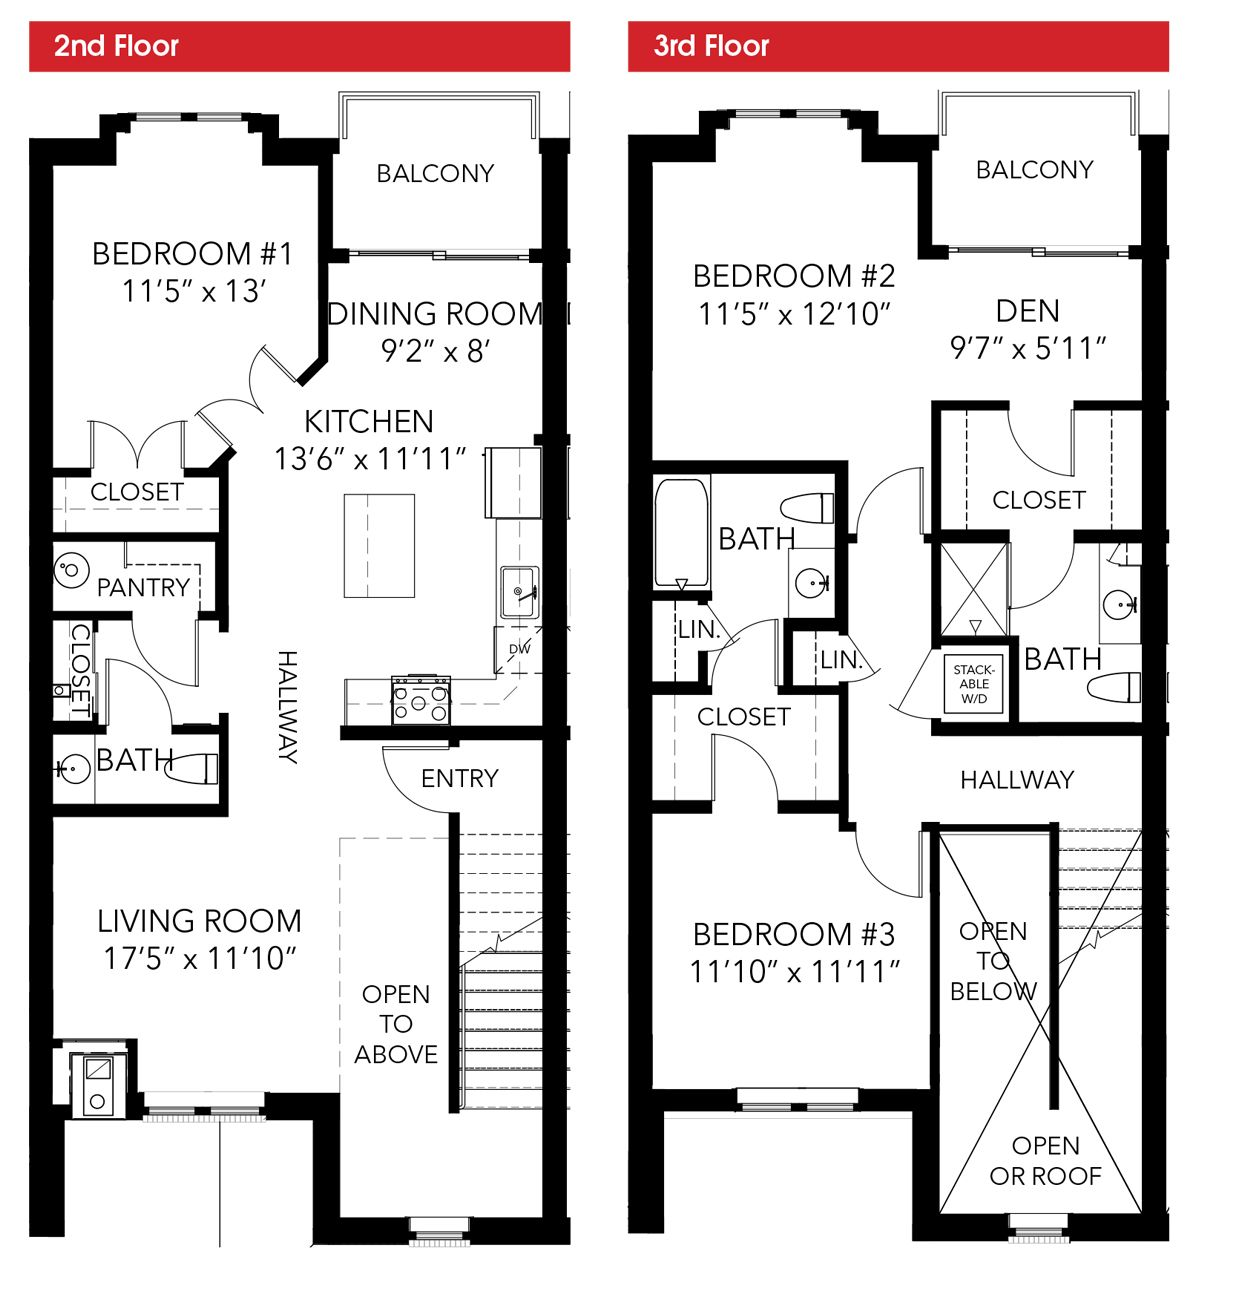 Gorgeous 50 2 story condo floor plans decorating design for 2 story 2 bedroom apartment plans